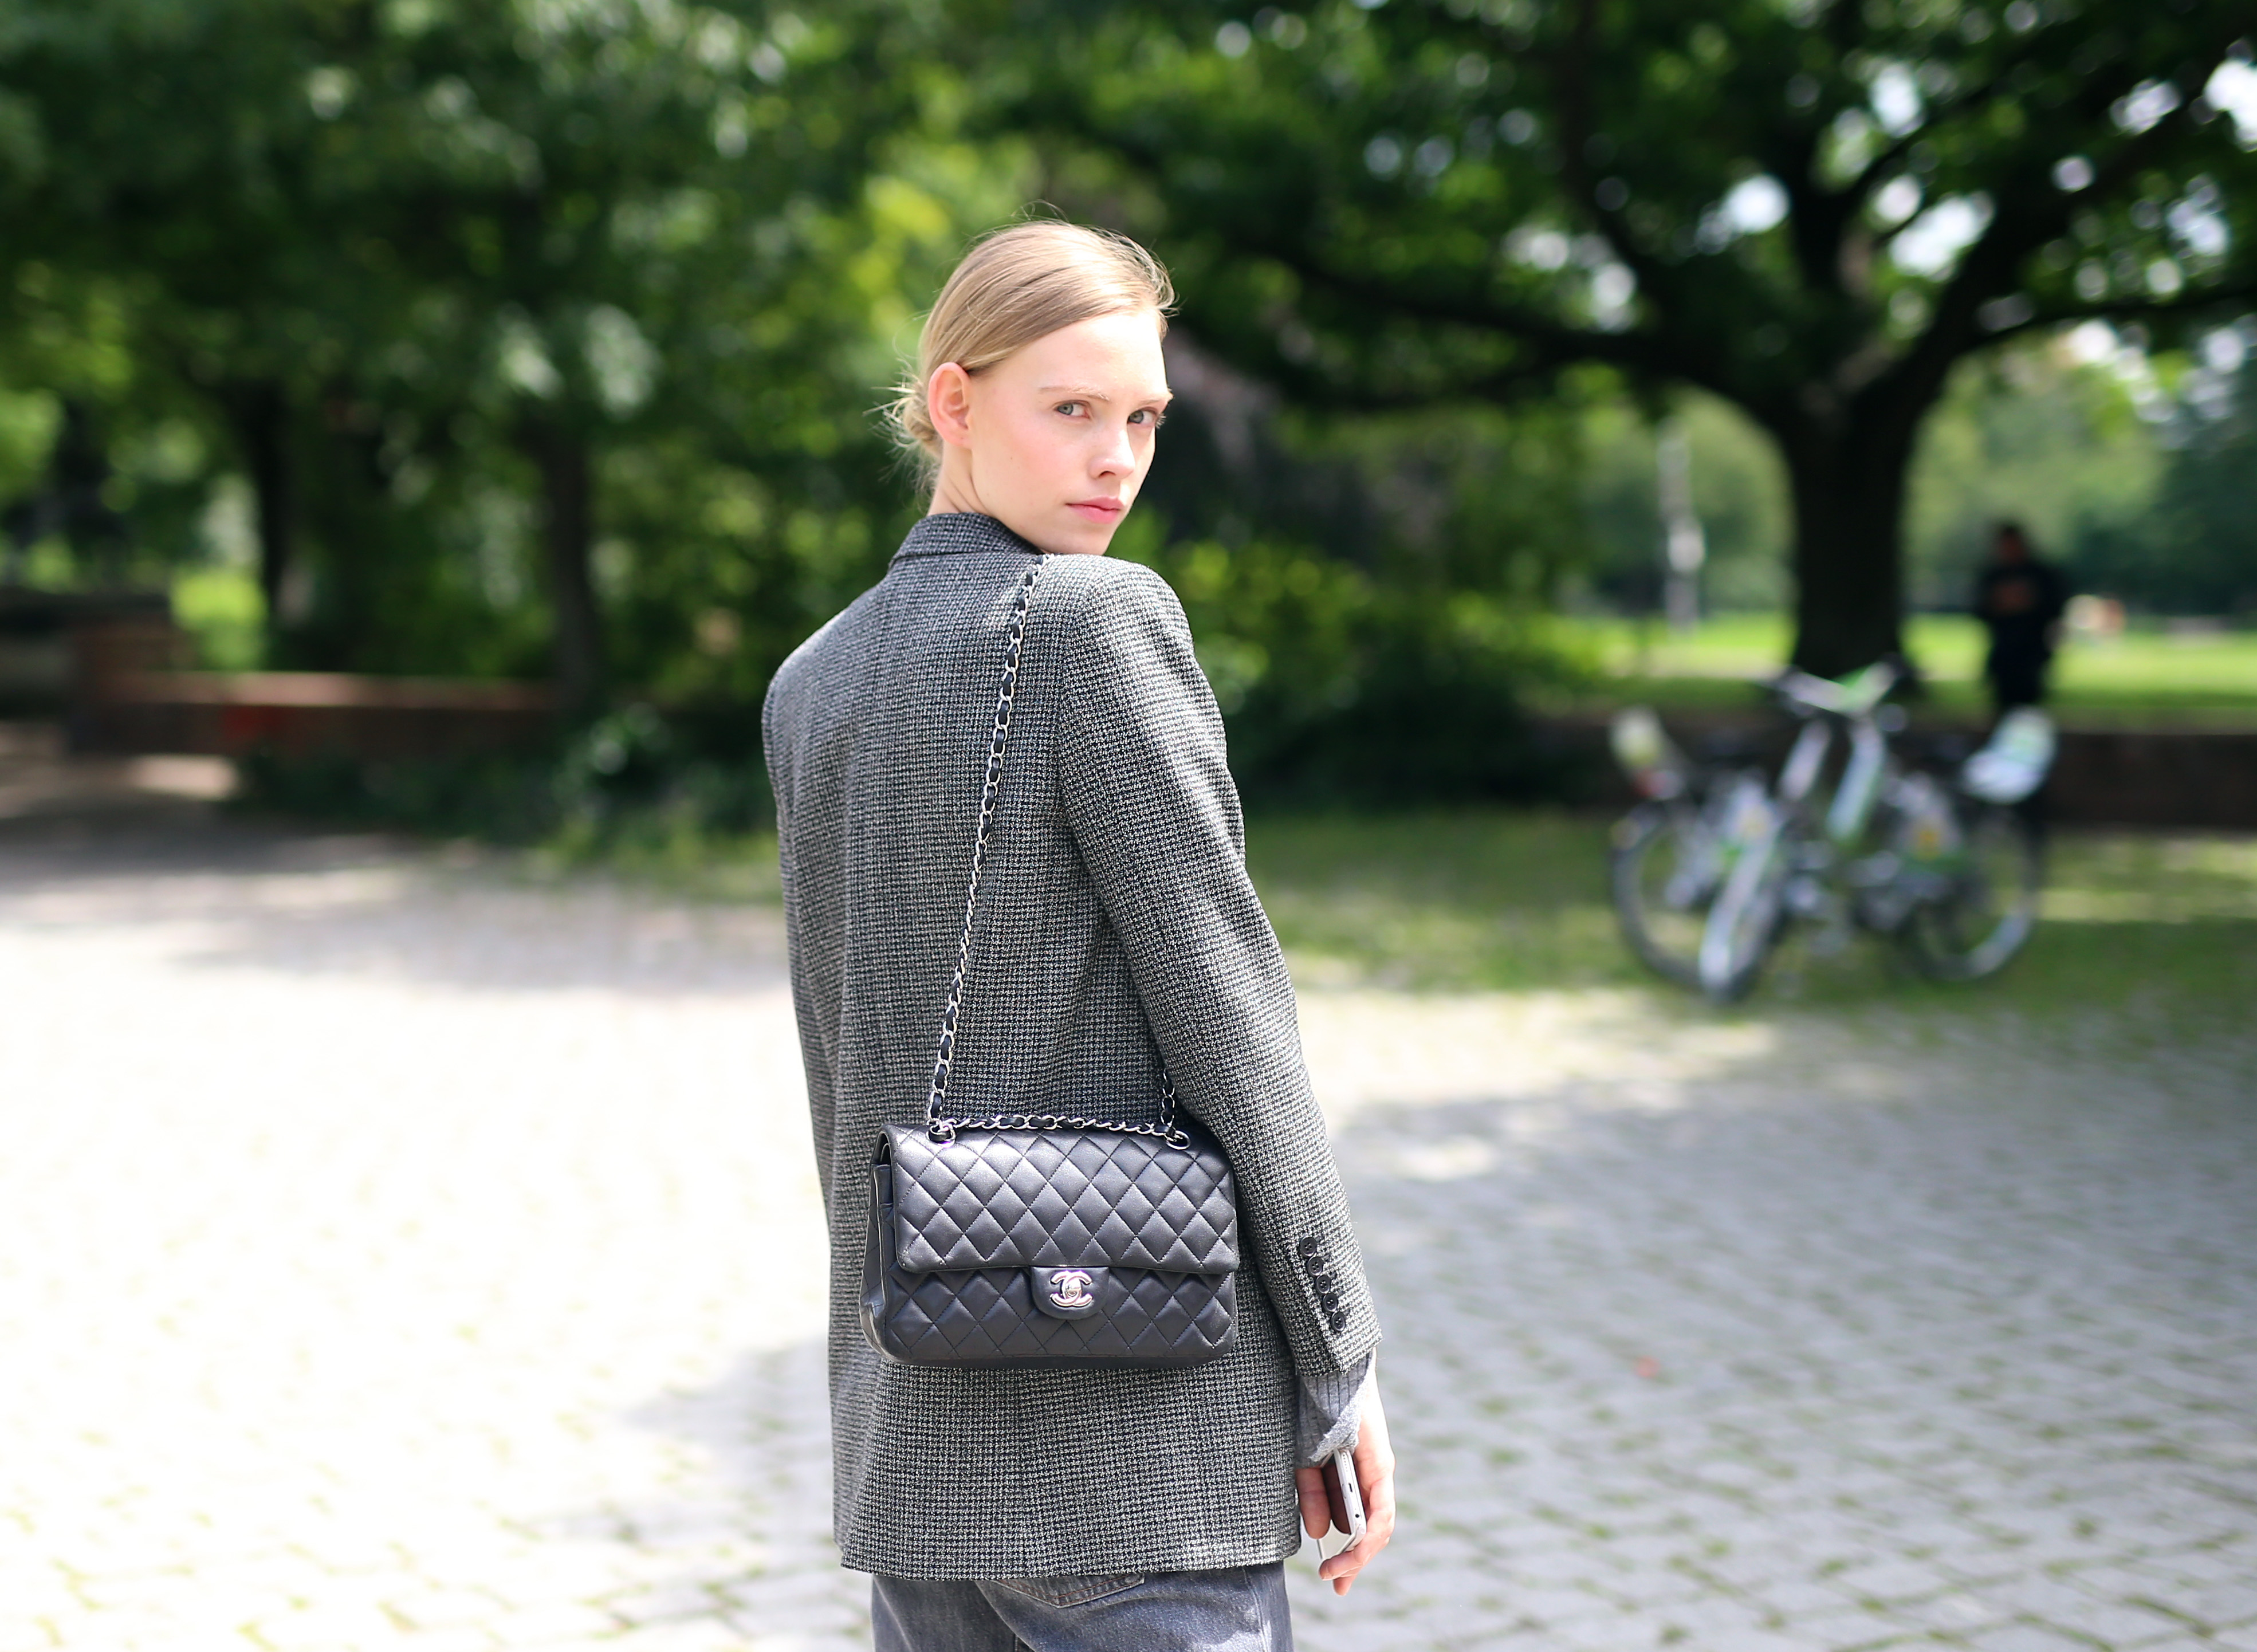 BERLIN, GERMANY - JULY 05:  Charlotte Nolting, wearing  Ysc blazer, Levi's vintage trousers, Chanel bag, Repetto pullover, is seen during the Mercedes-Benz Fashion Week Berlin Spring/Summer 2018 at Kaufhaus Jandorf on July 5, 2017 in Berlin, Germany.  (Photo by Joern Pollex/Getty Images)